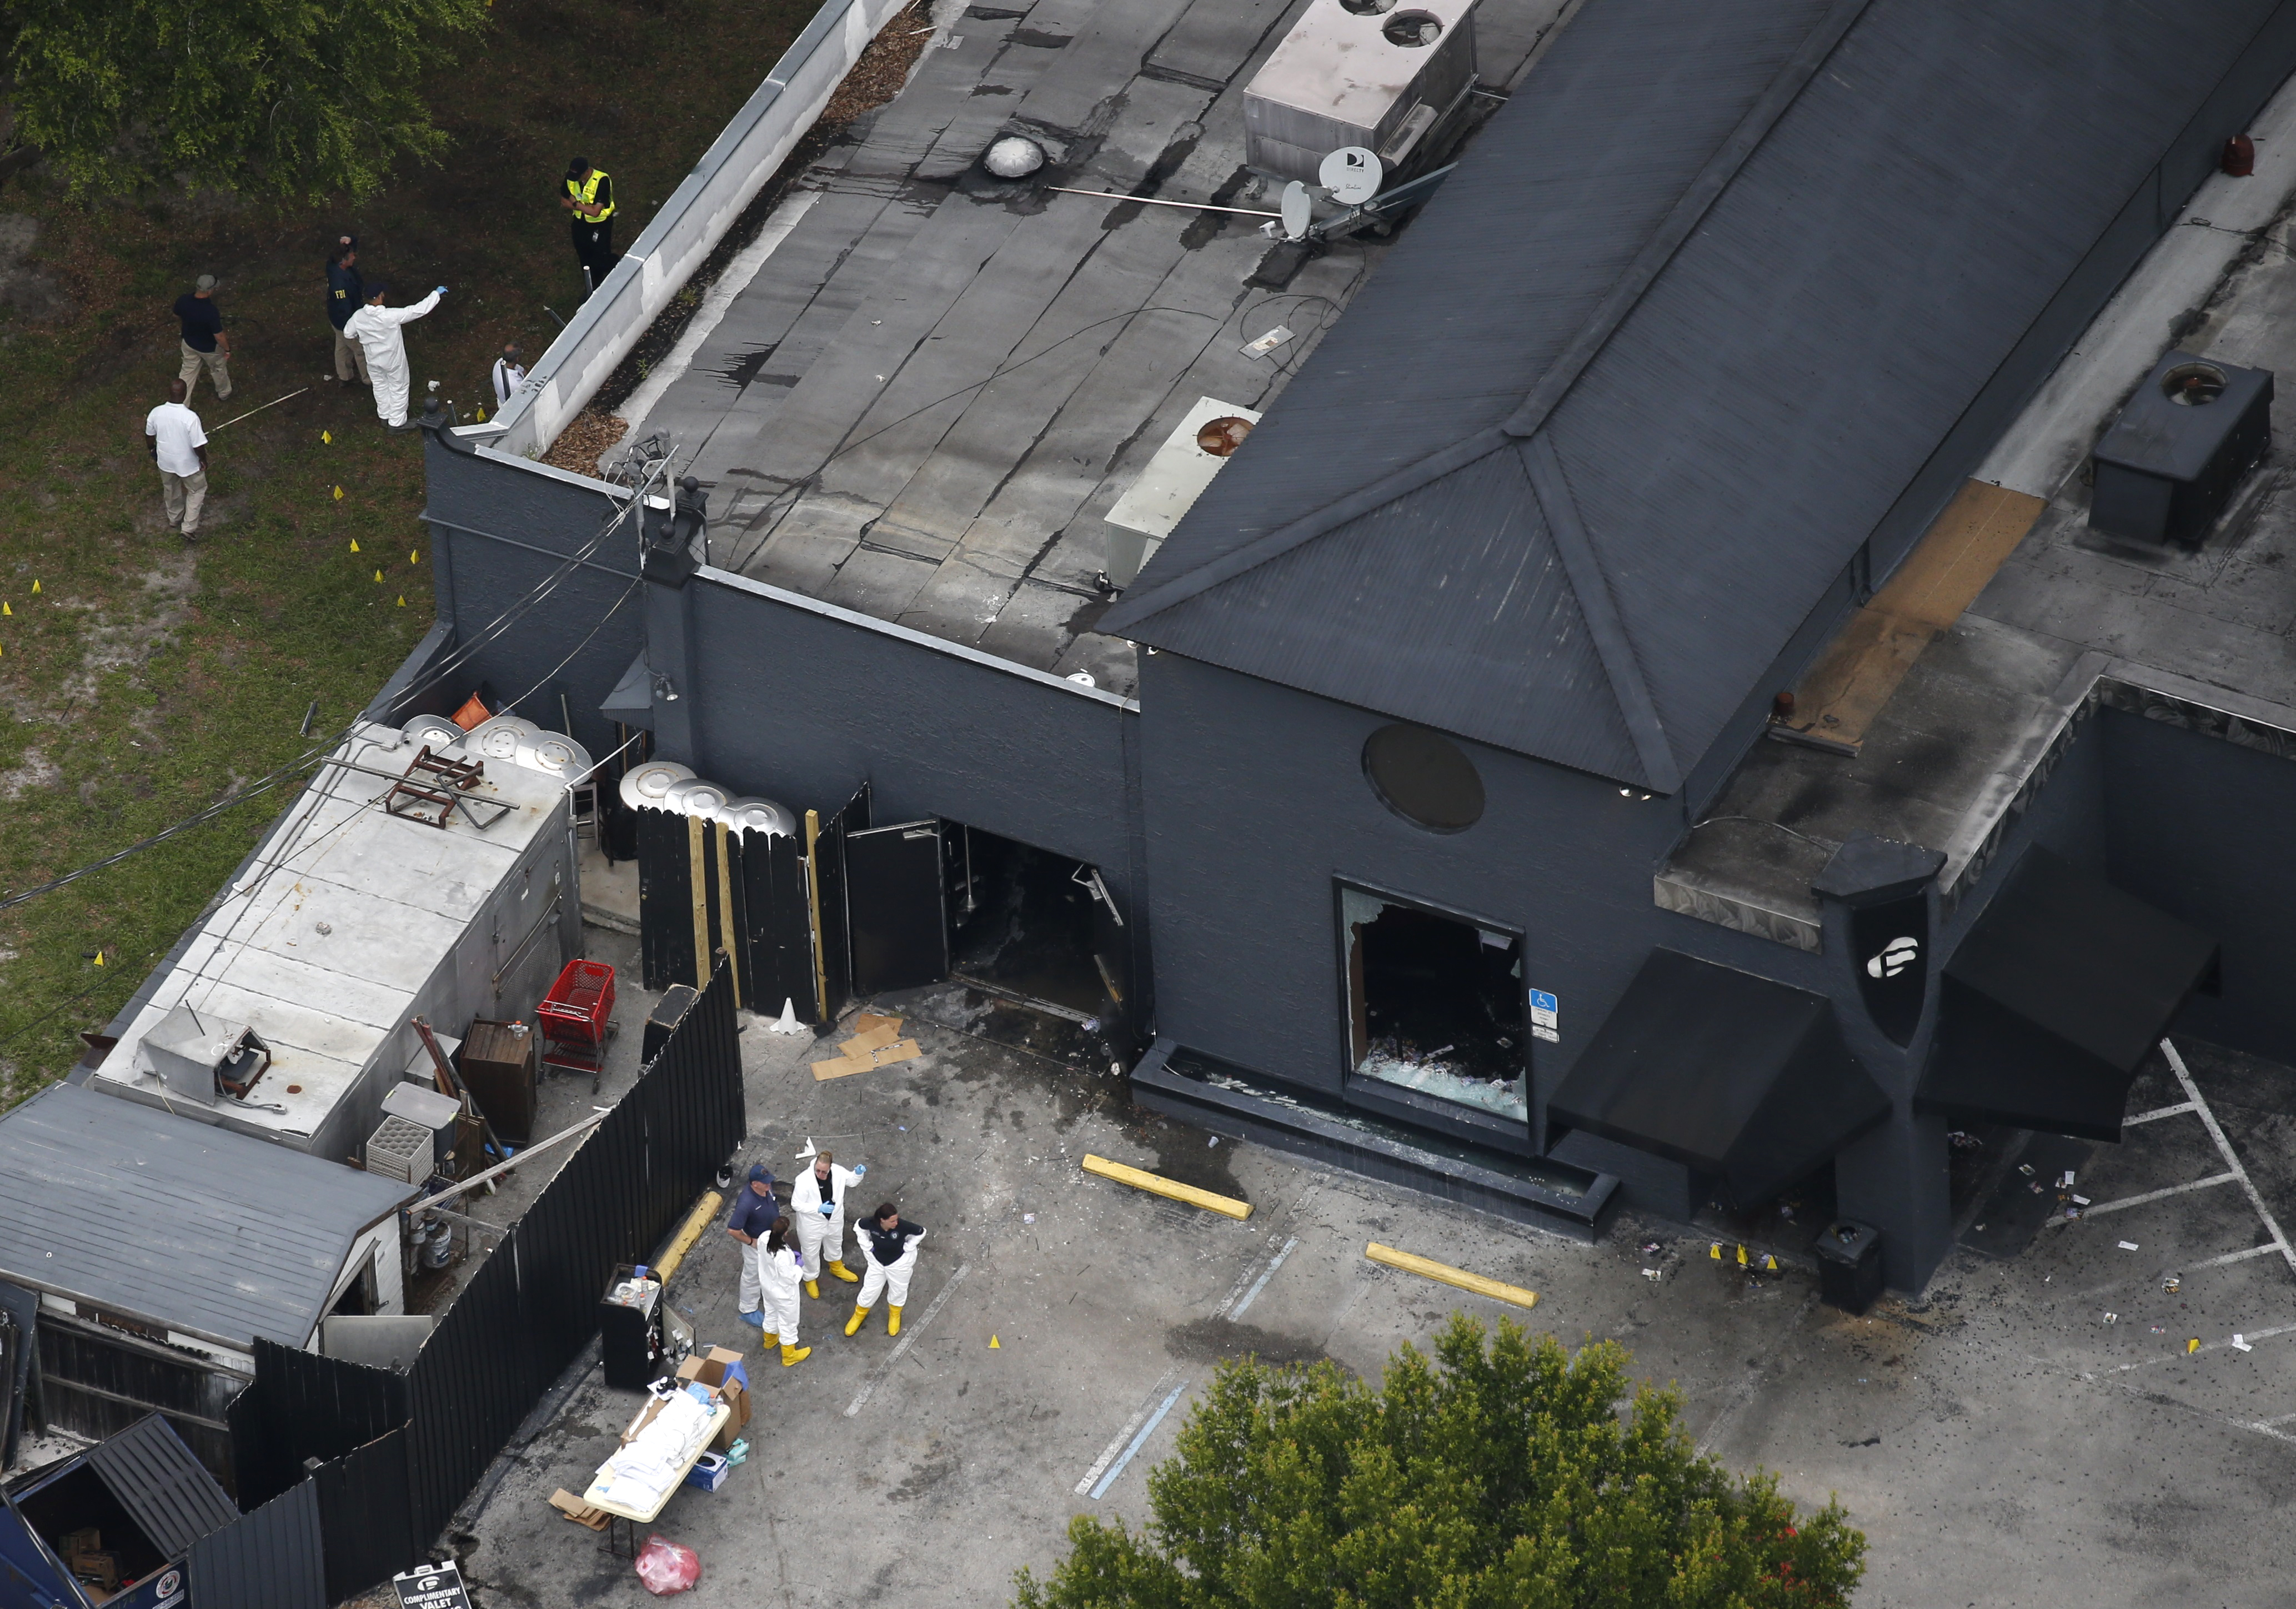 Police forensics investigators work at the crime scene of a mass shooting at the Pulse gay night club in Orlando